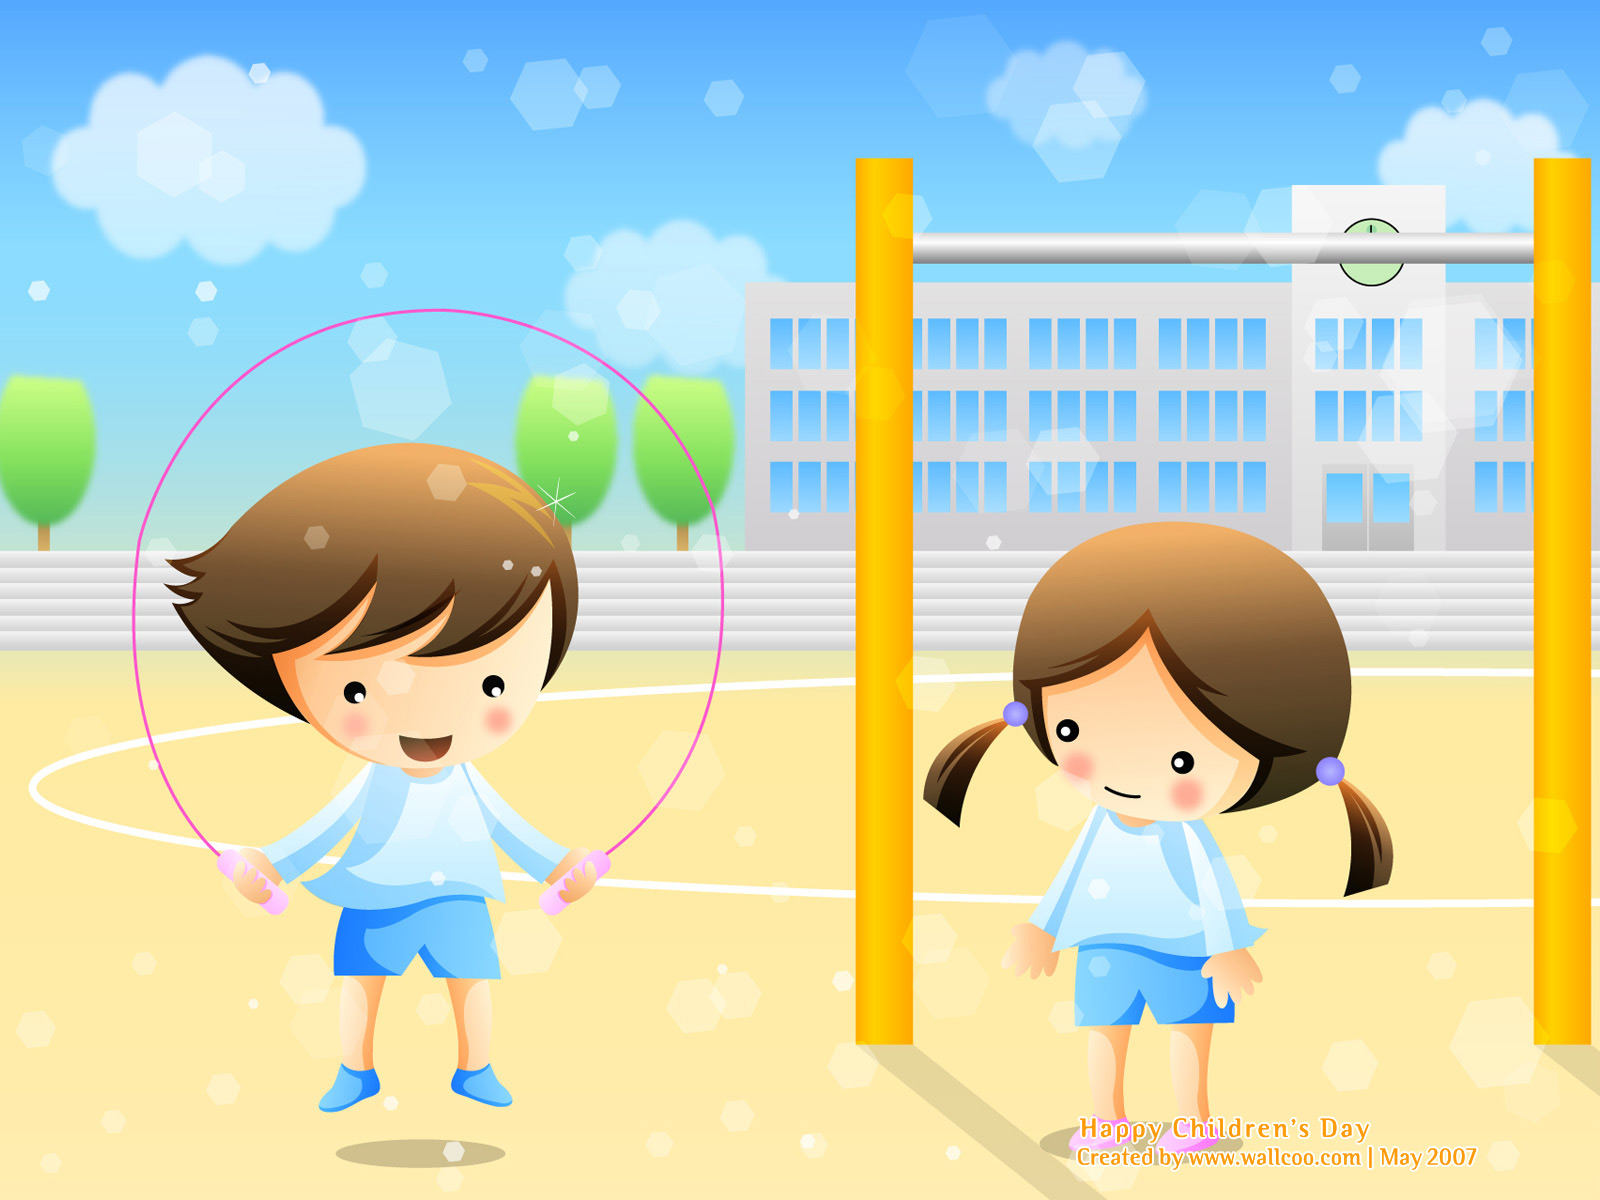 Children's day wallpaper 5